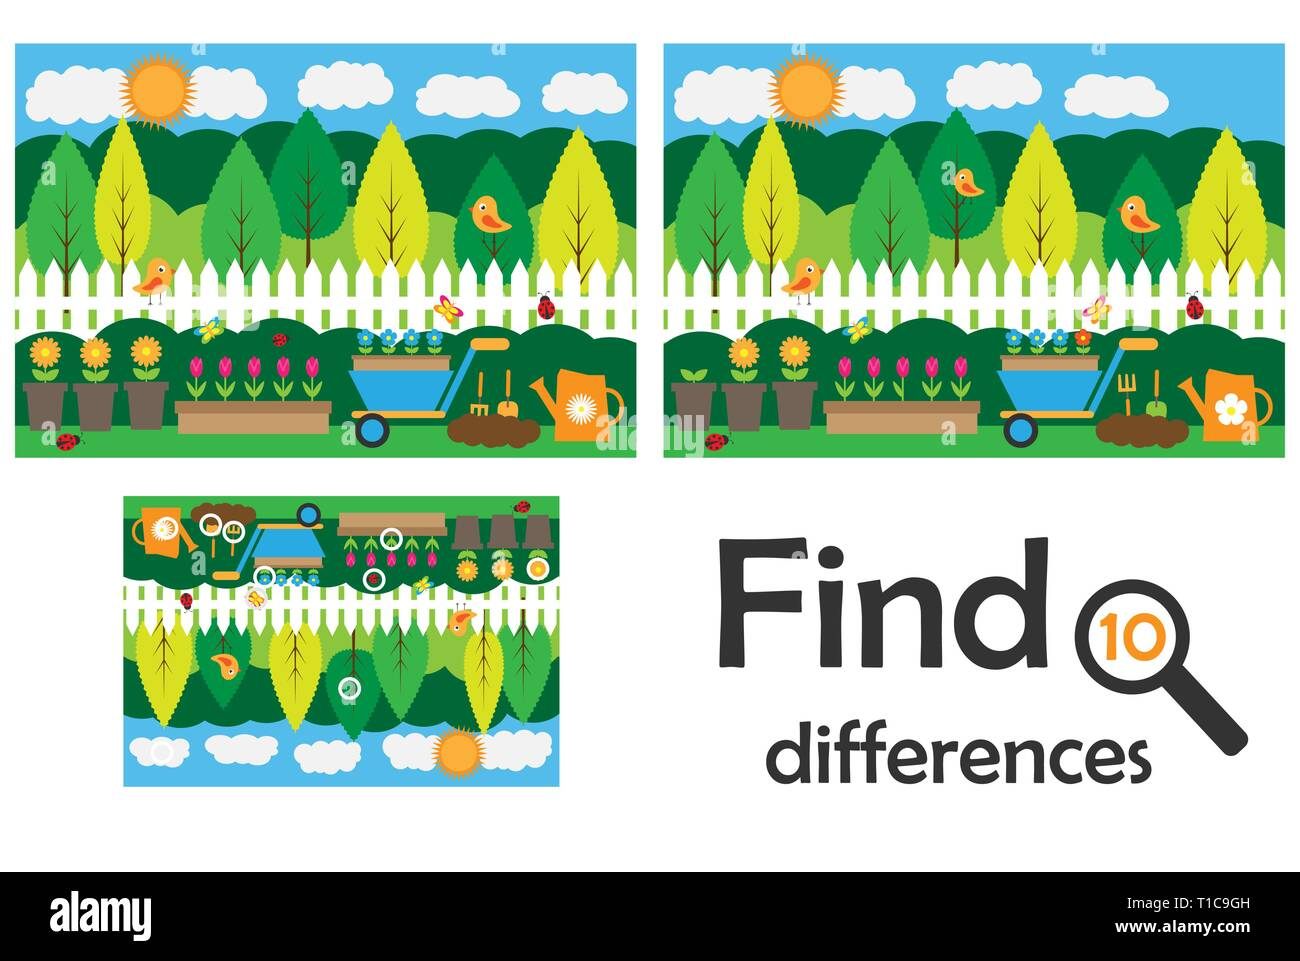 Find 10 differences, game for children, garden cartoon, education ...